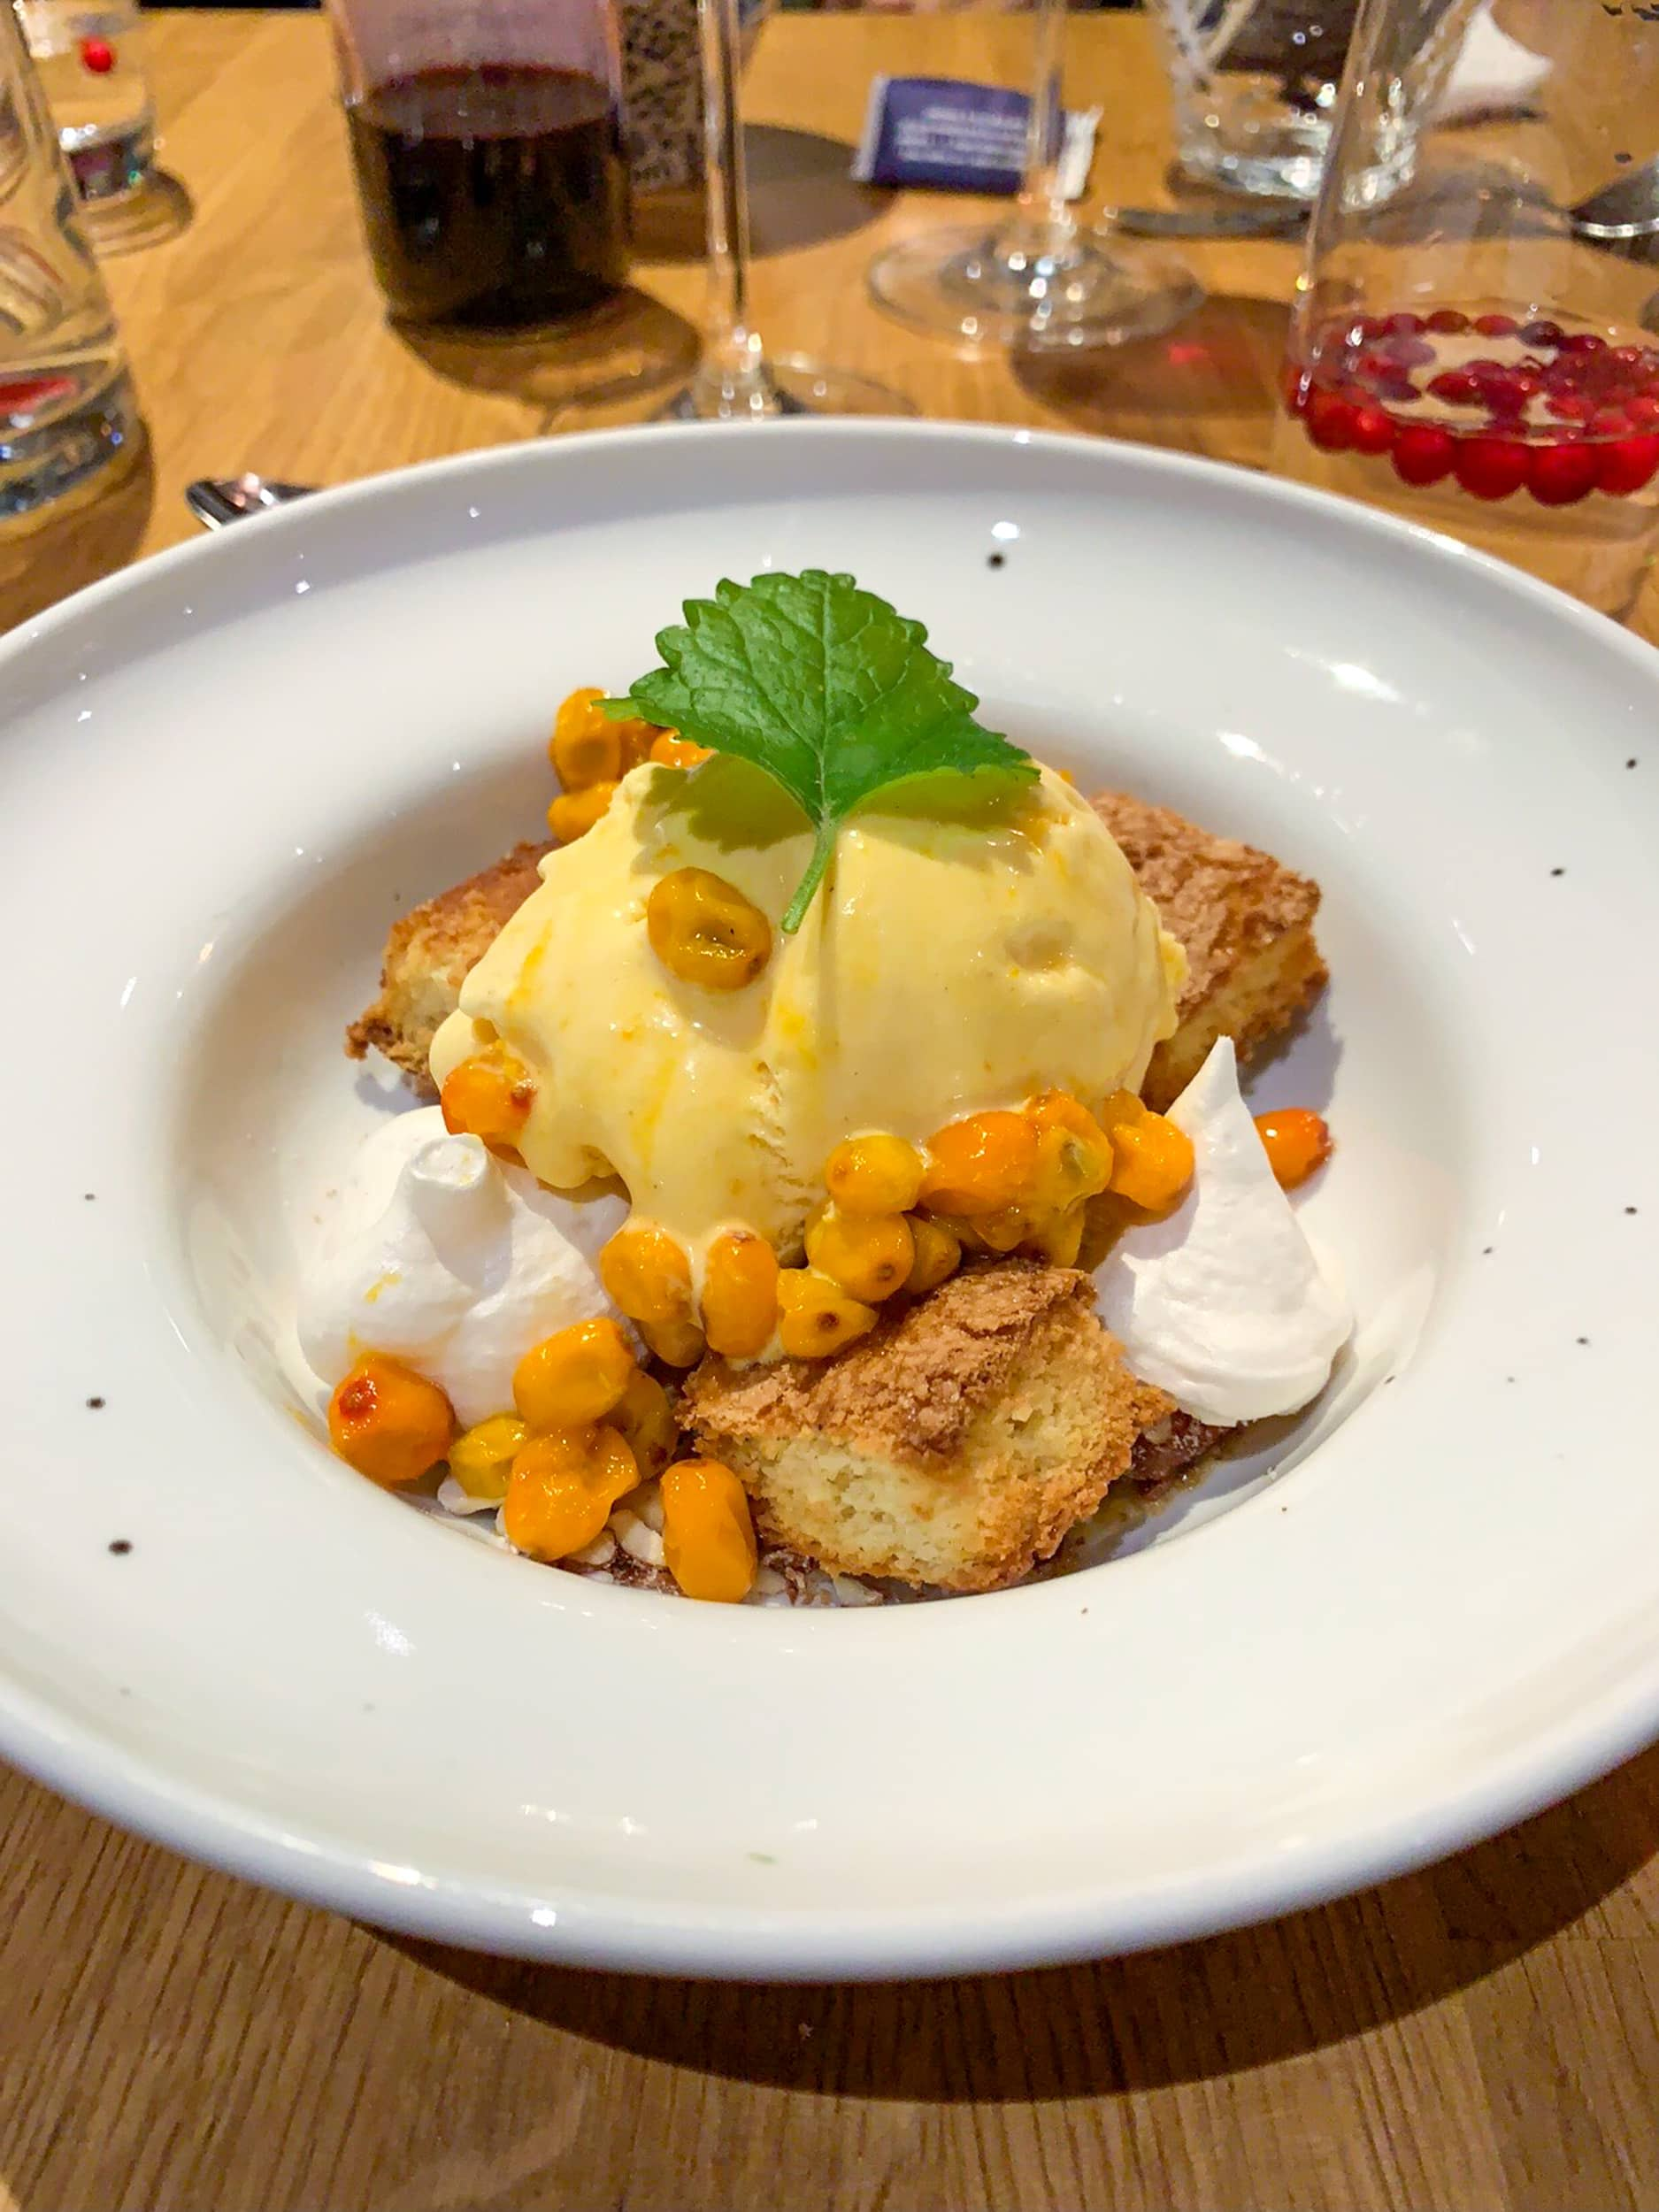 Cloudberries with ice cream